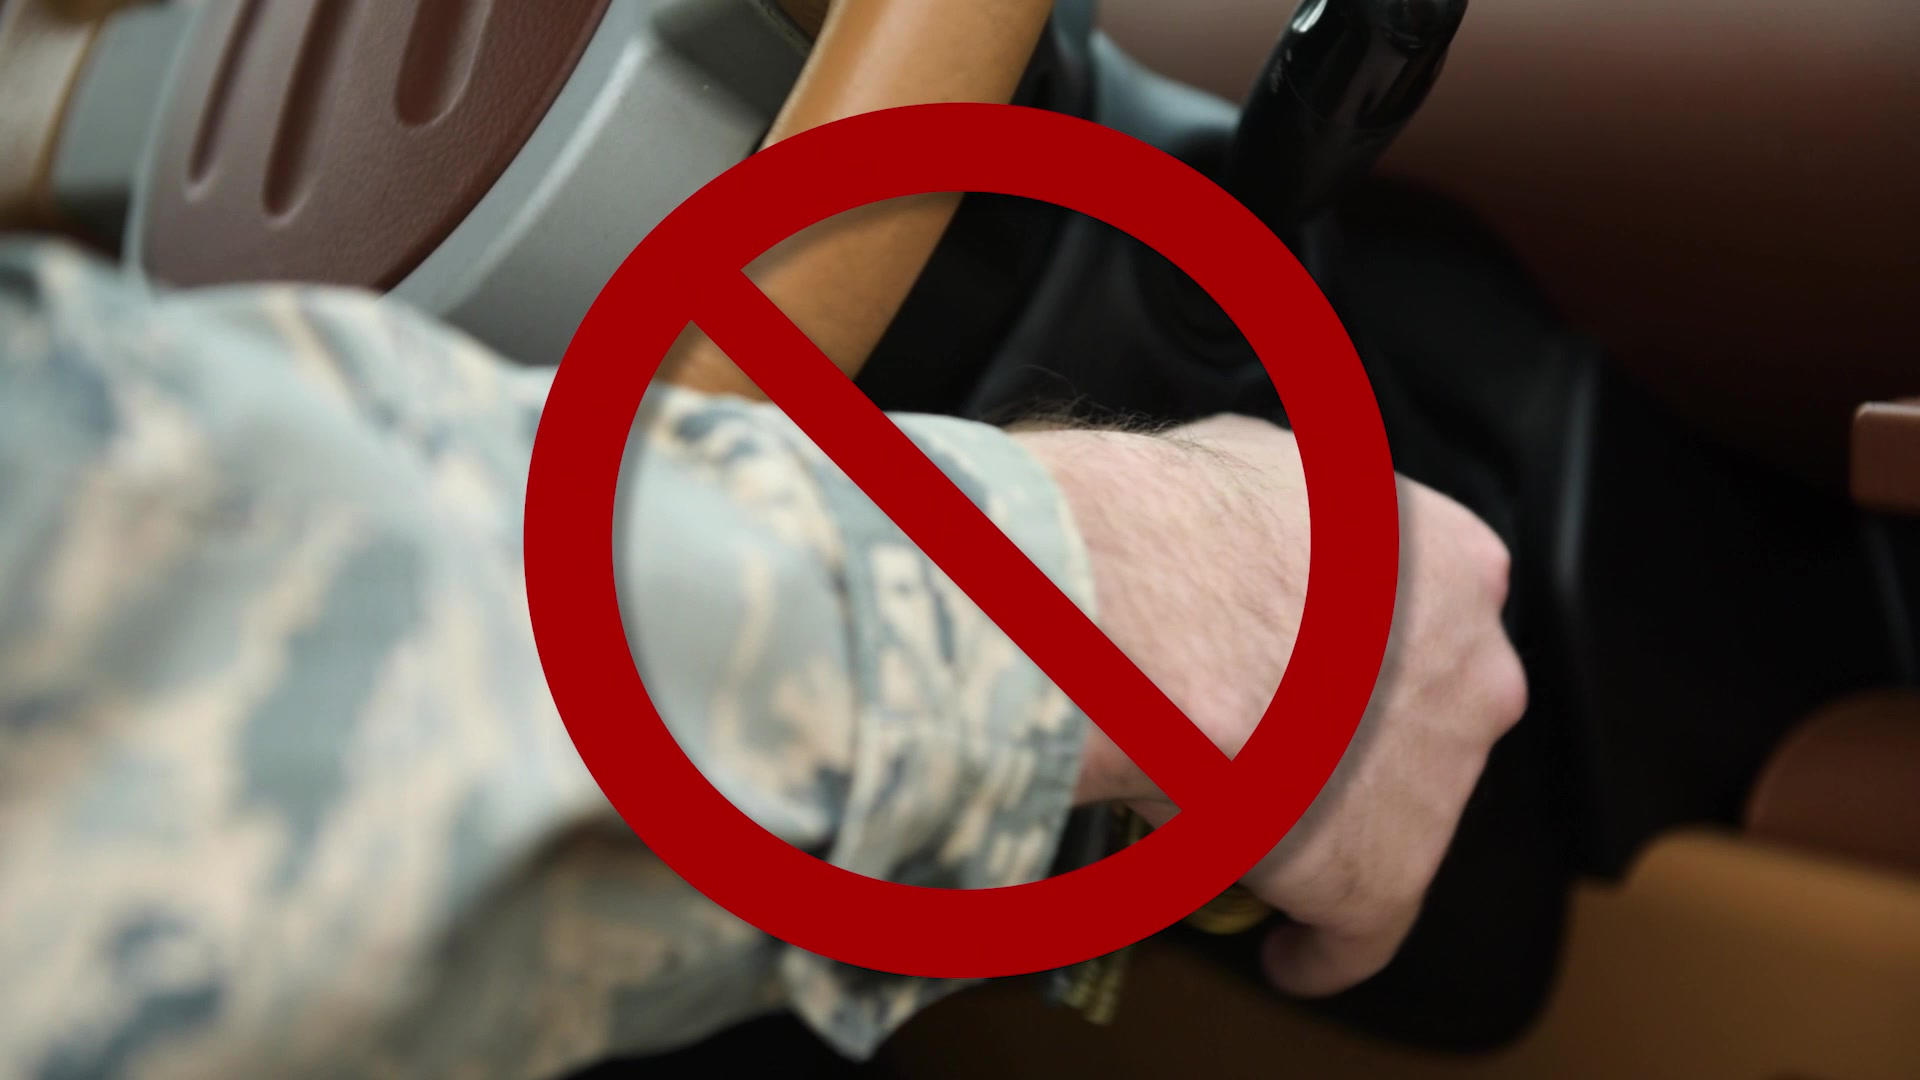 Driving Safety spot reinforces wearing seat belt and securing cell phone.